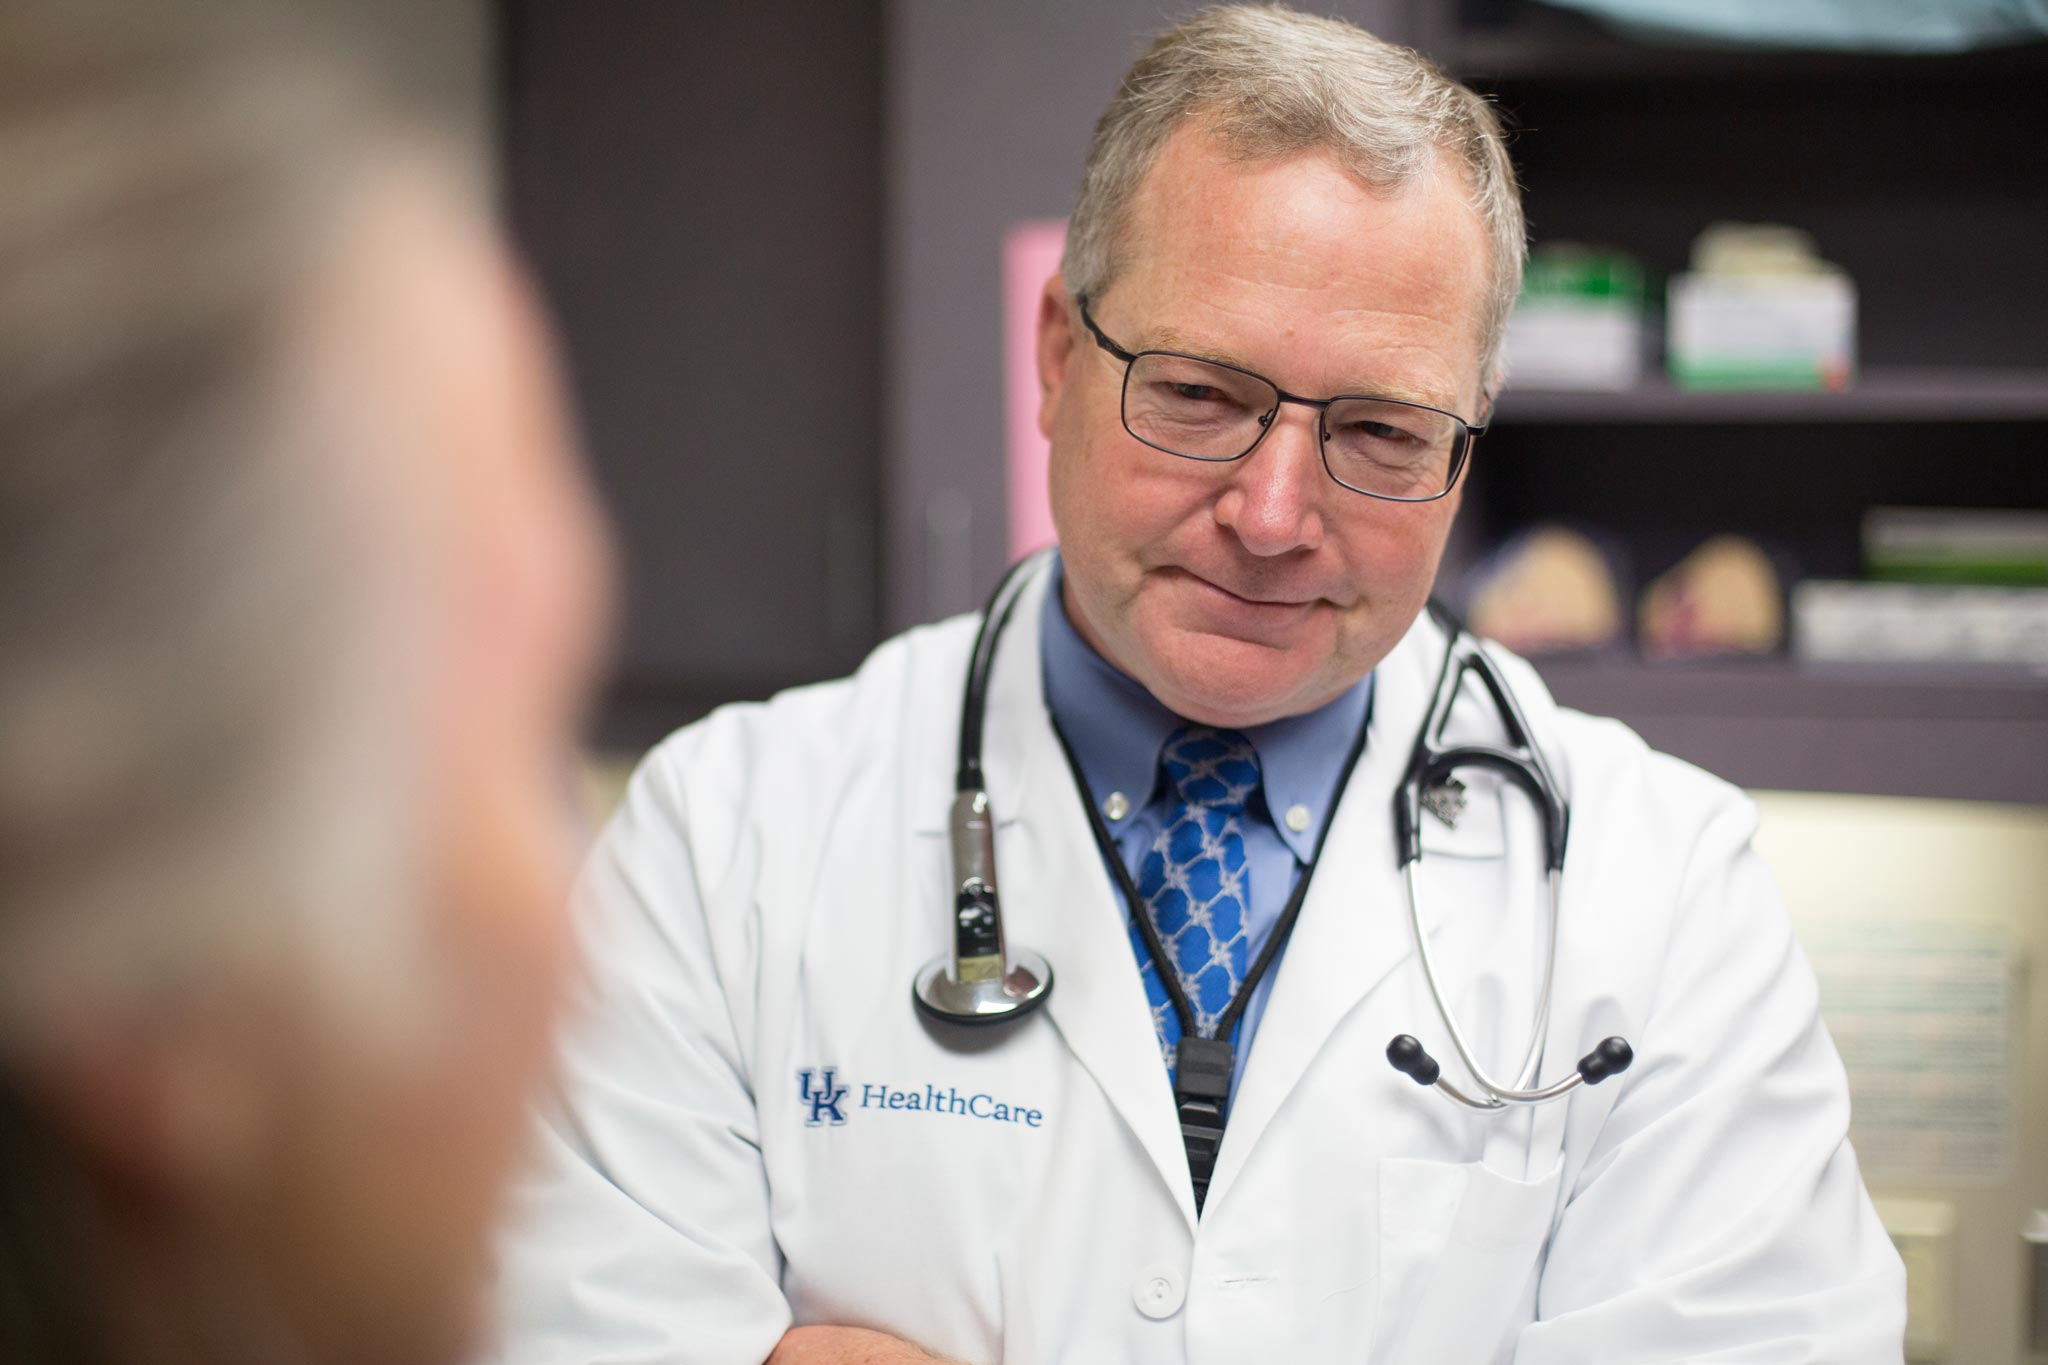 Dr. Mullett listens while his patient talks.